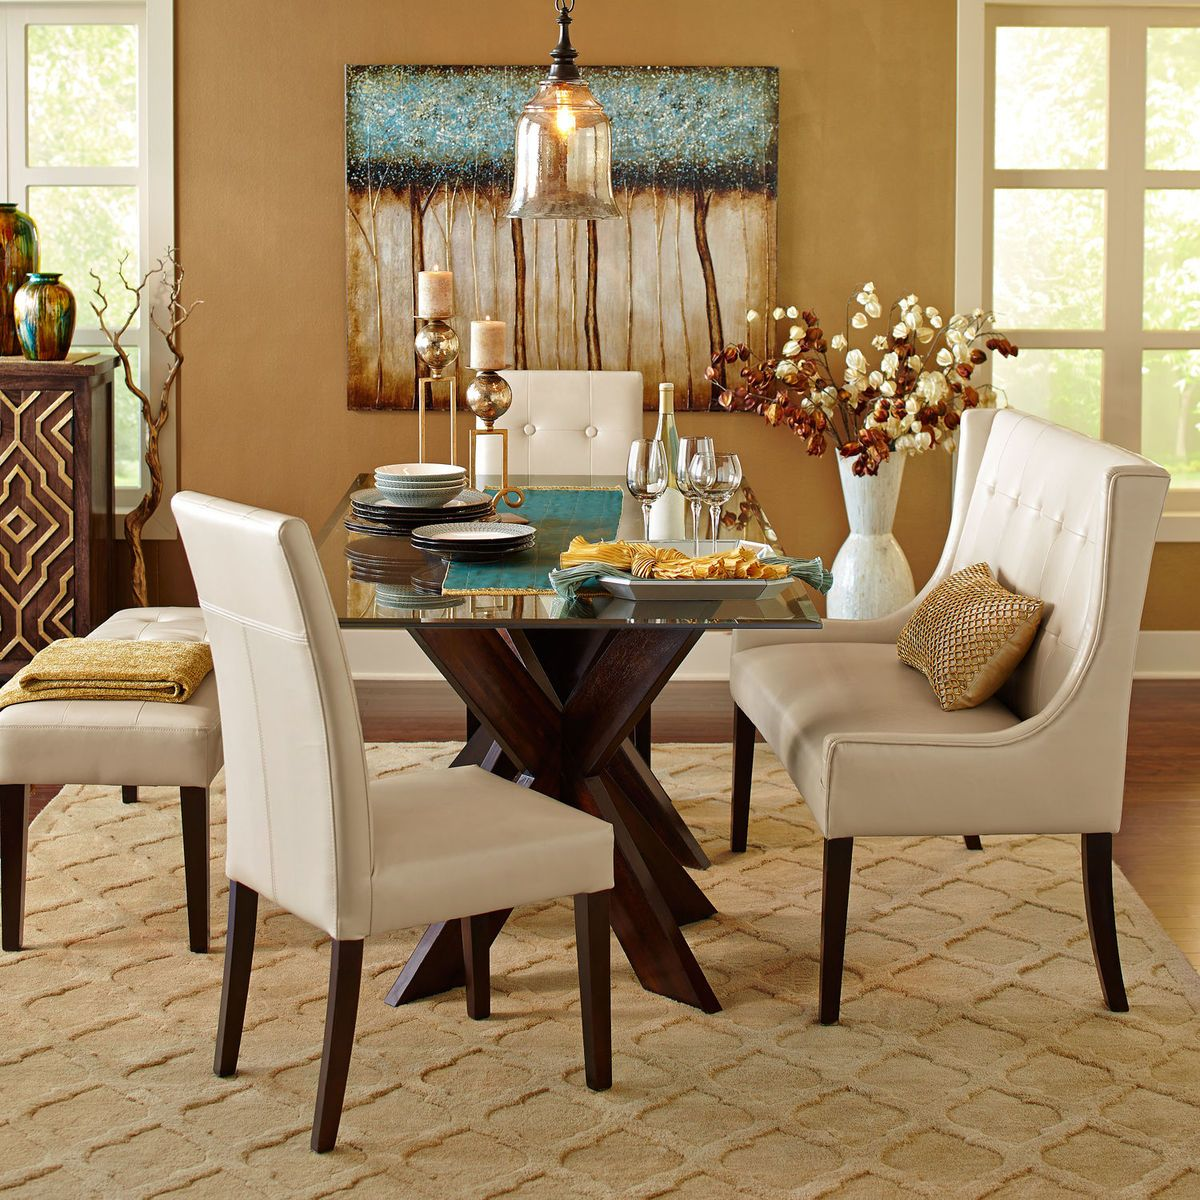 Ordinaire Bennett Glass Table Top Dining Collection | Pier 1 Imports